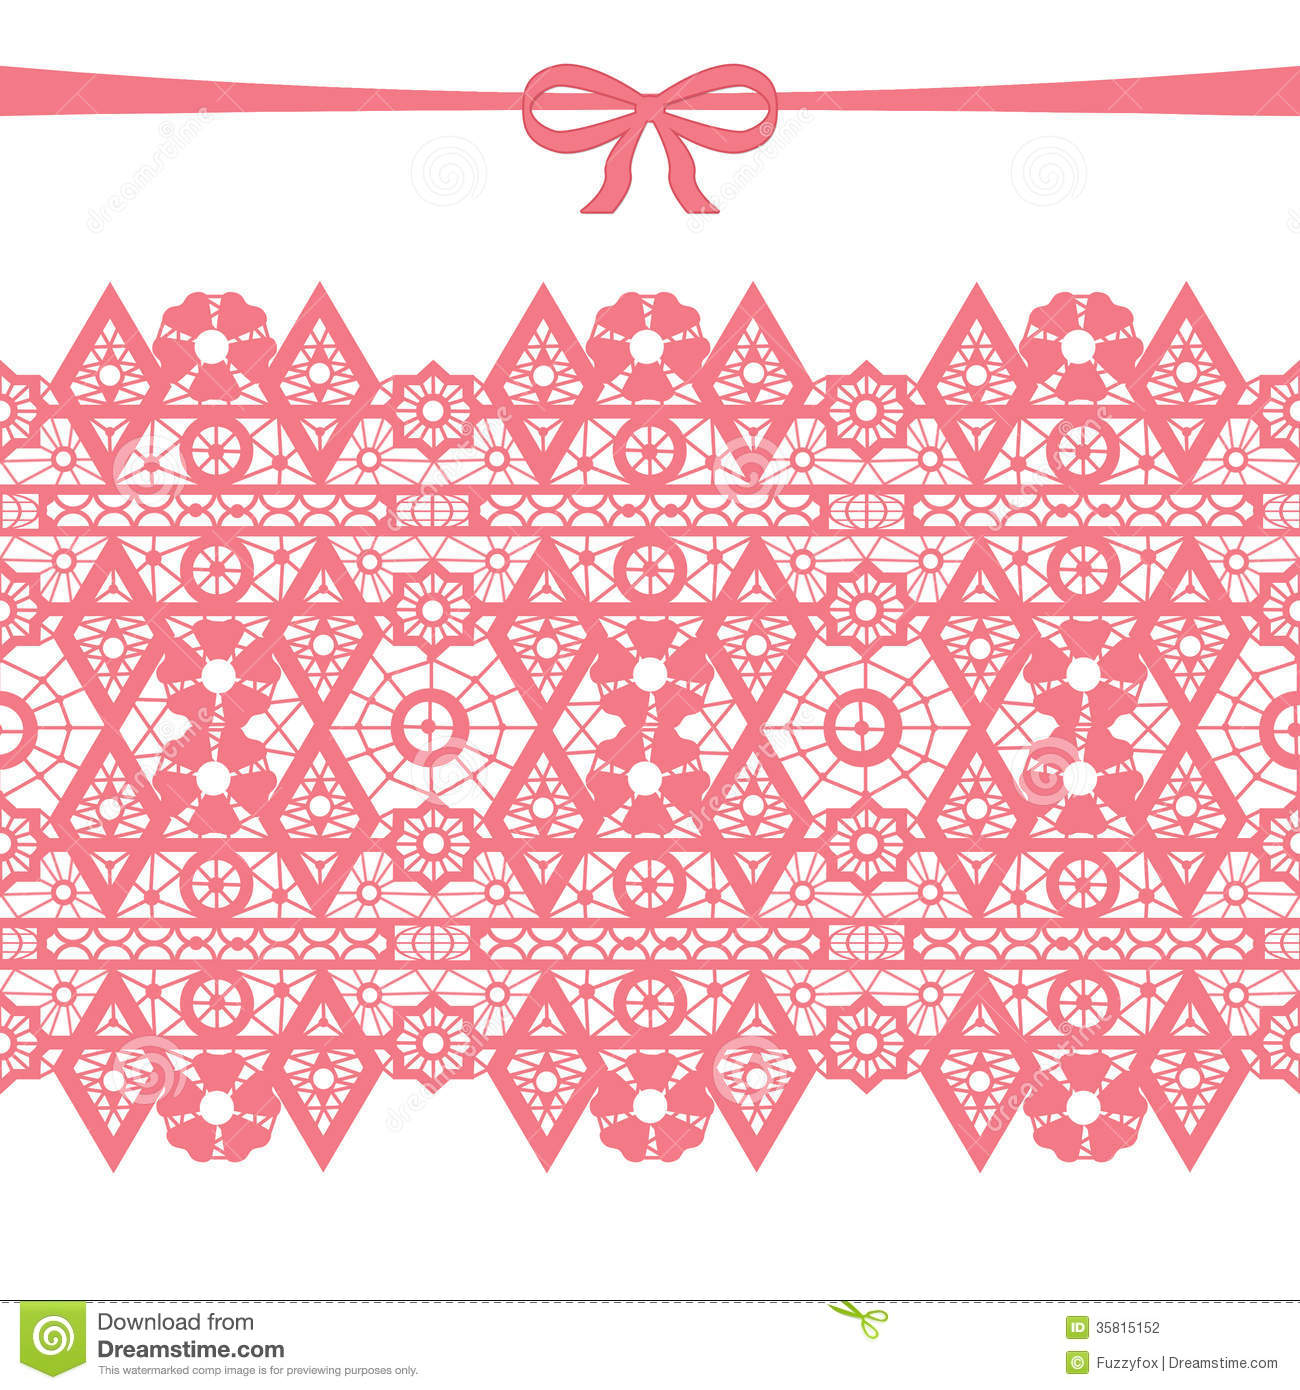 Coral seamless lace stock illustration. Image of backdrop ...